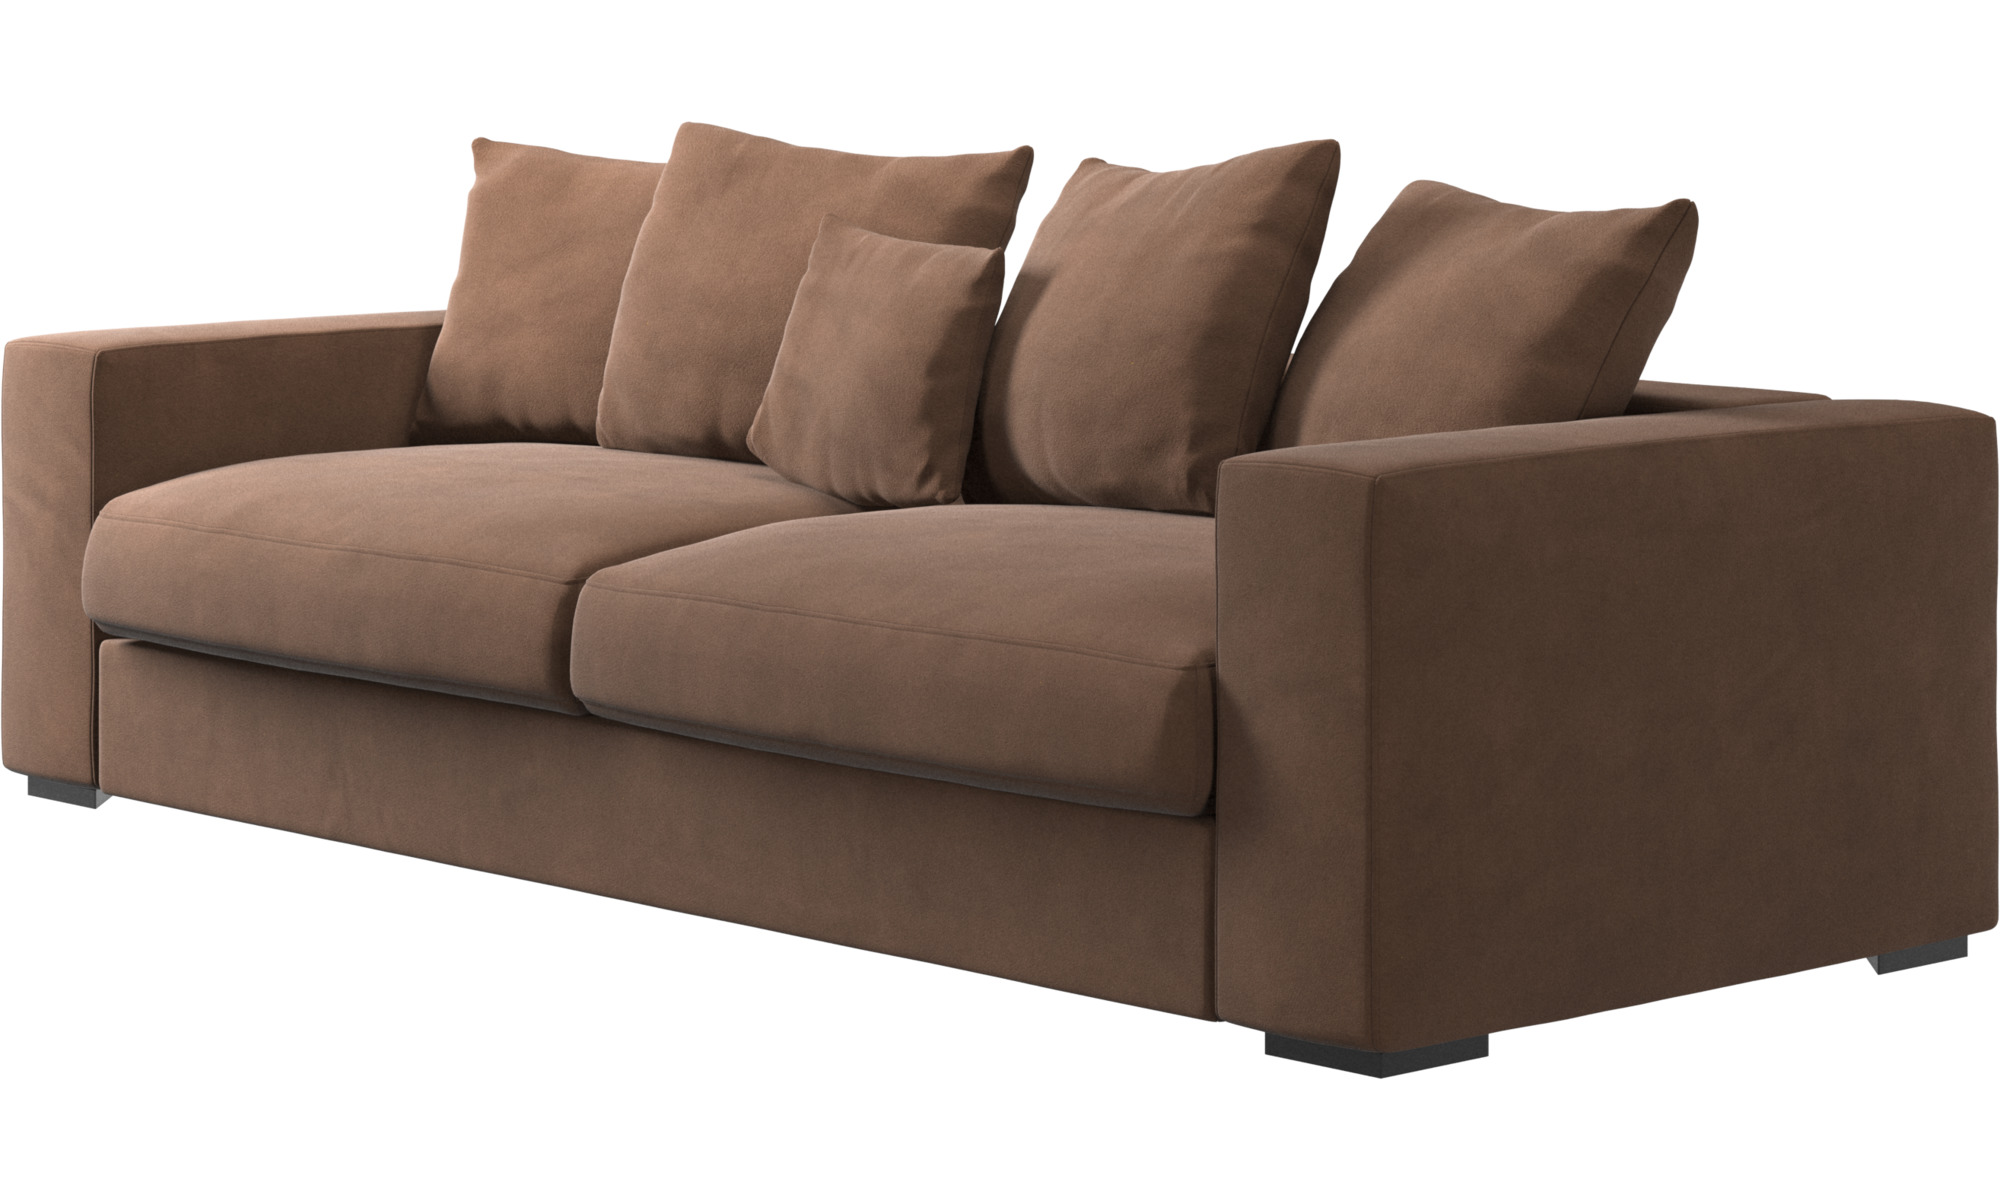 3 seater sofas cenova sofa boconcept. Black Bedroom Furniture Sets. Home Design Ideas